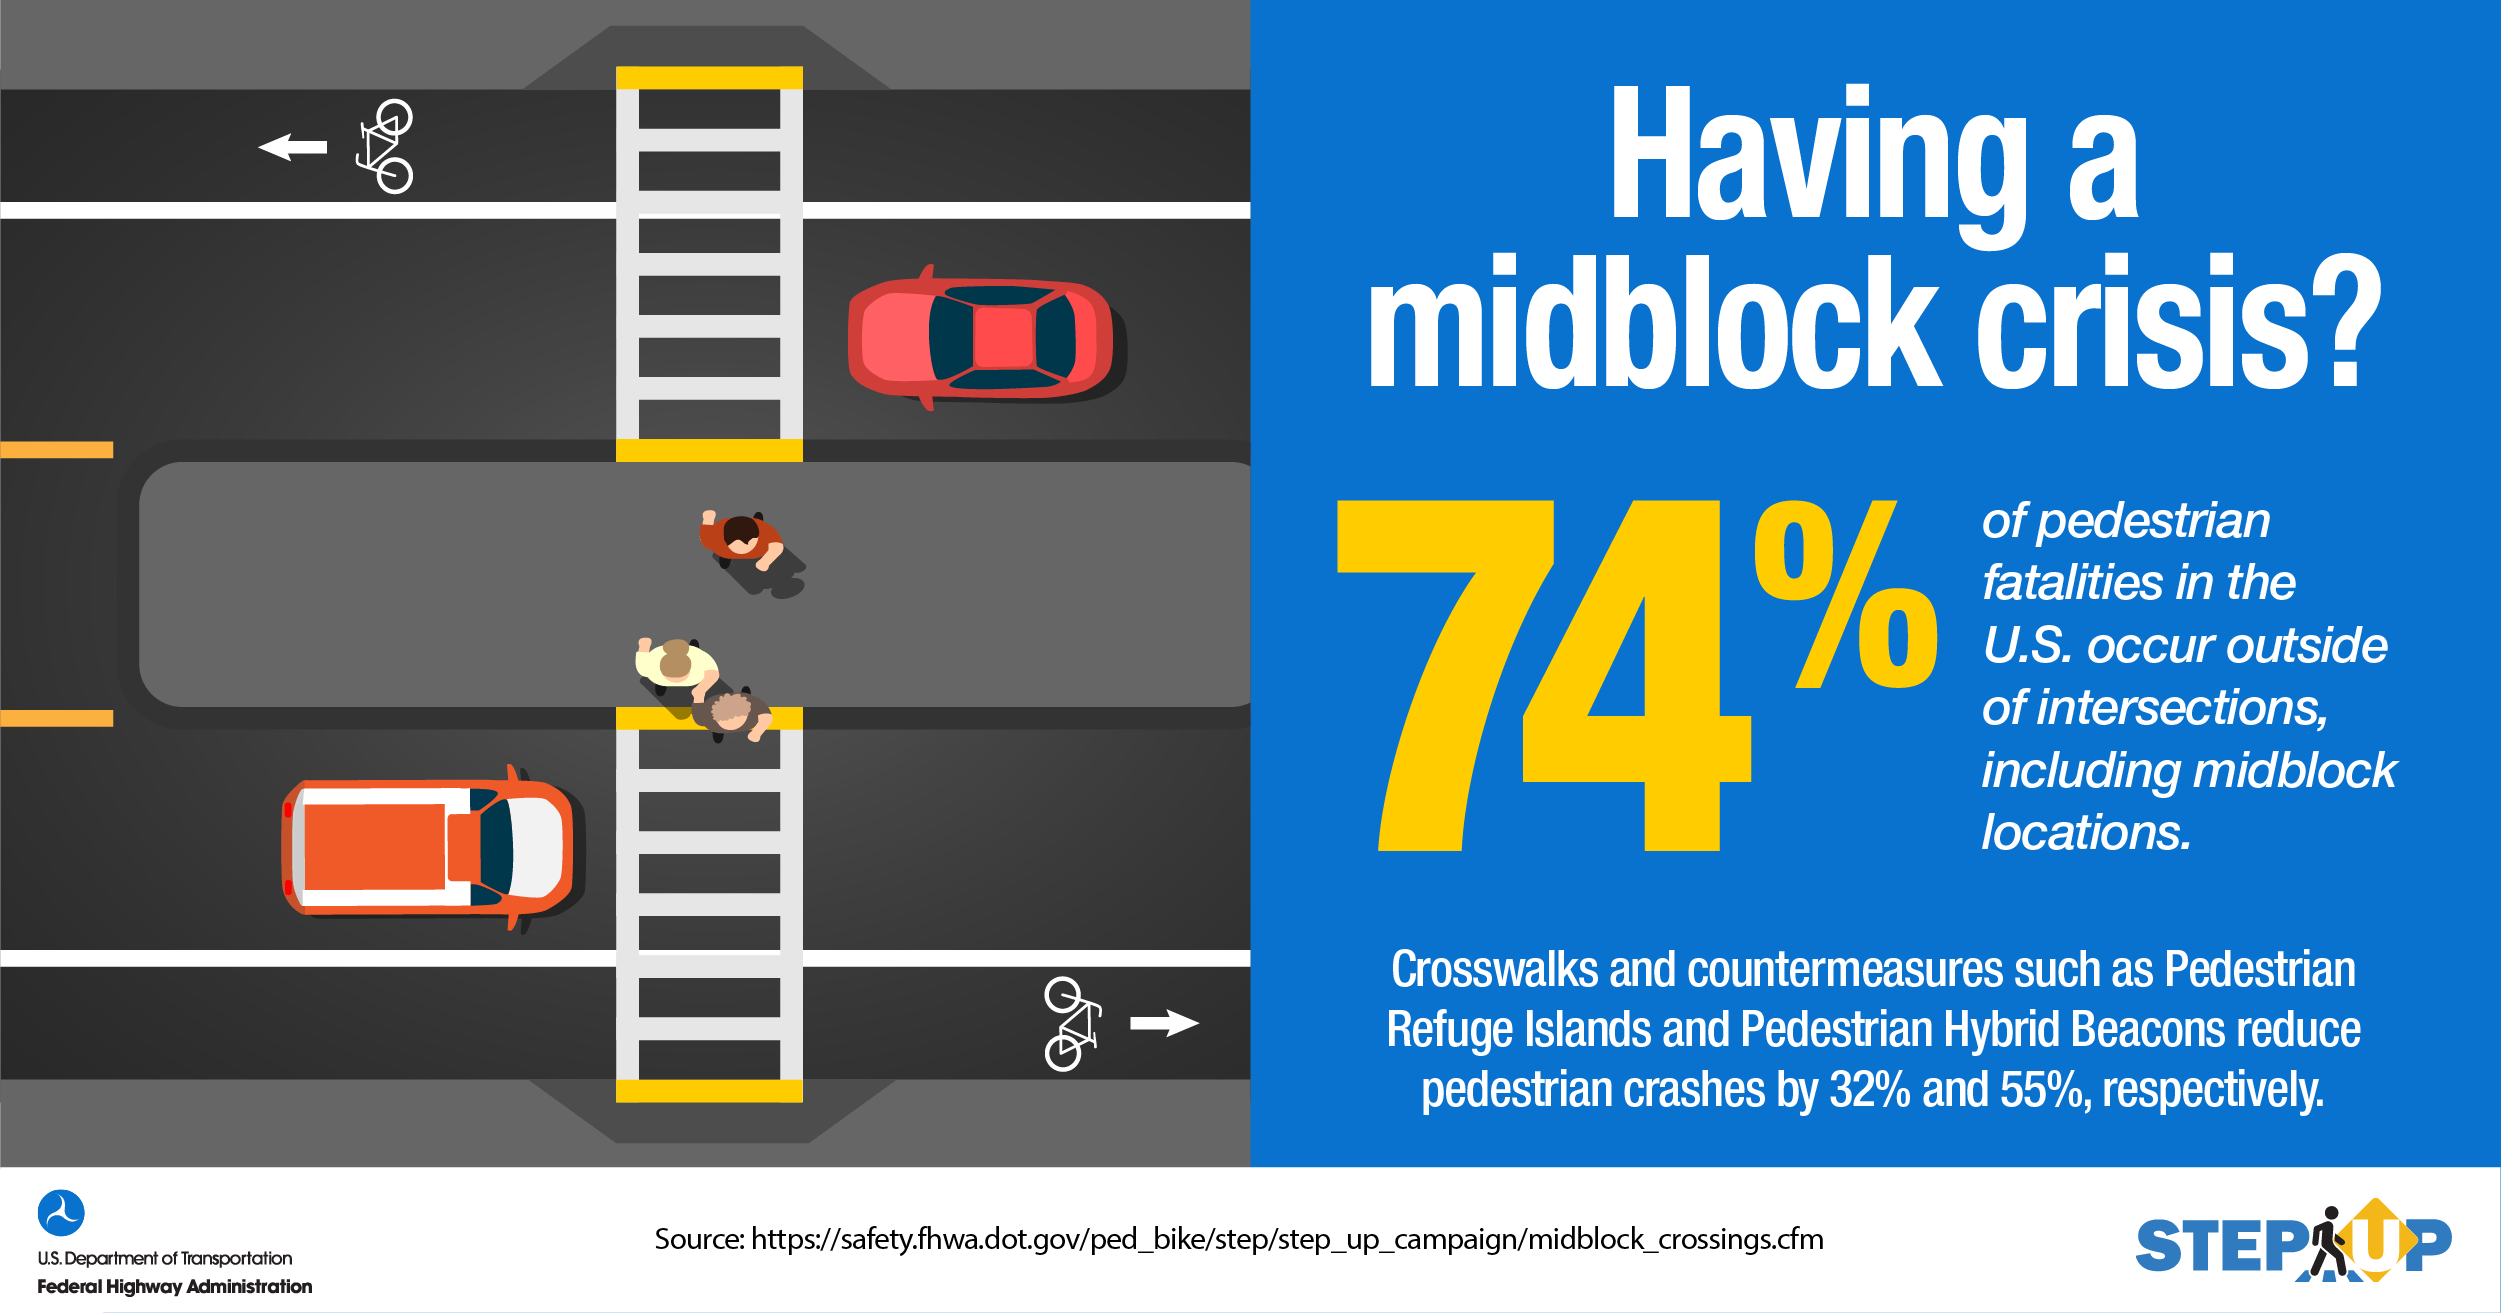 """STEP infographic of overhead view of multi-lane traffic with a crosswalk, separated by a median. """"Having a midblock crisis? 74% of pedestrian fatalities in the U.S. occur outside of intersections including midblock locations. Crosswalks and countermeasures such as Pedestrian Refuge Islands and Pedestrian Hybrid Beacons reduce pedestrian crashes by 32% and 55% respectively."""""""